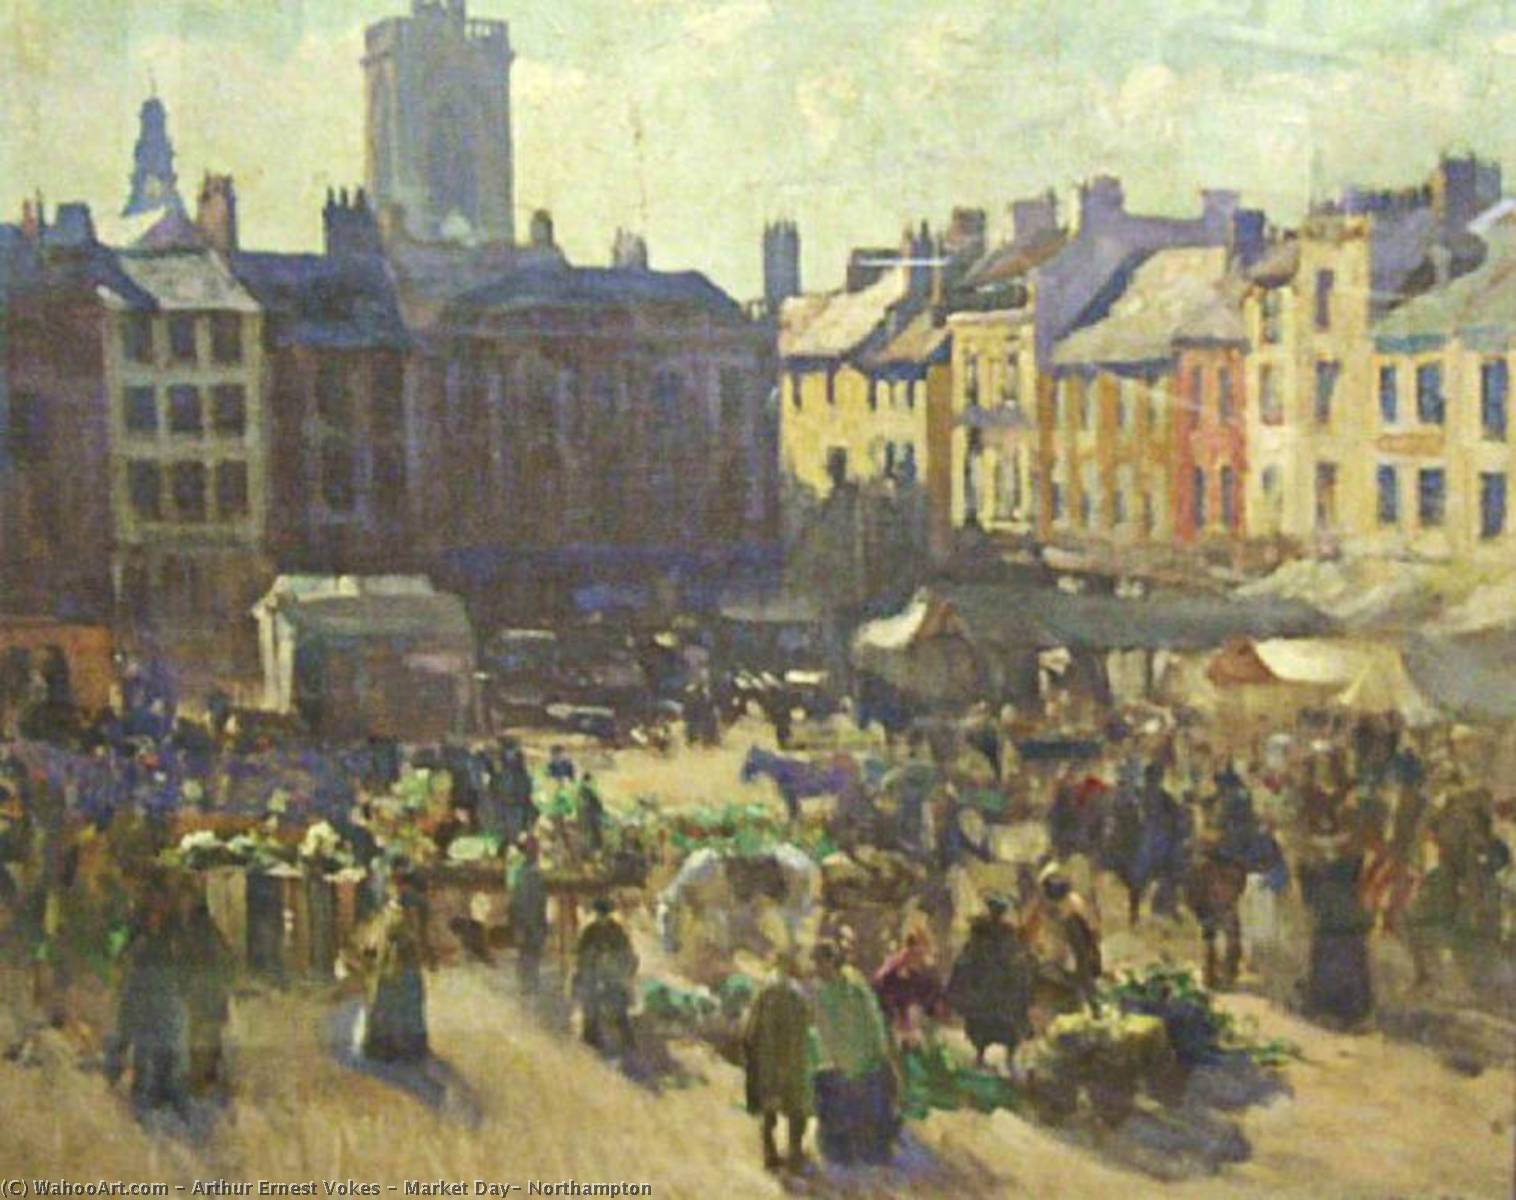 Buy Museum Art Reproductions | Market Day, Northampton by Arthur Ernest Vokes | ArtsDot.com